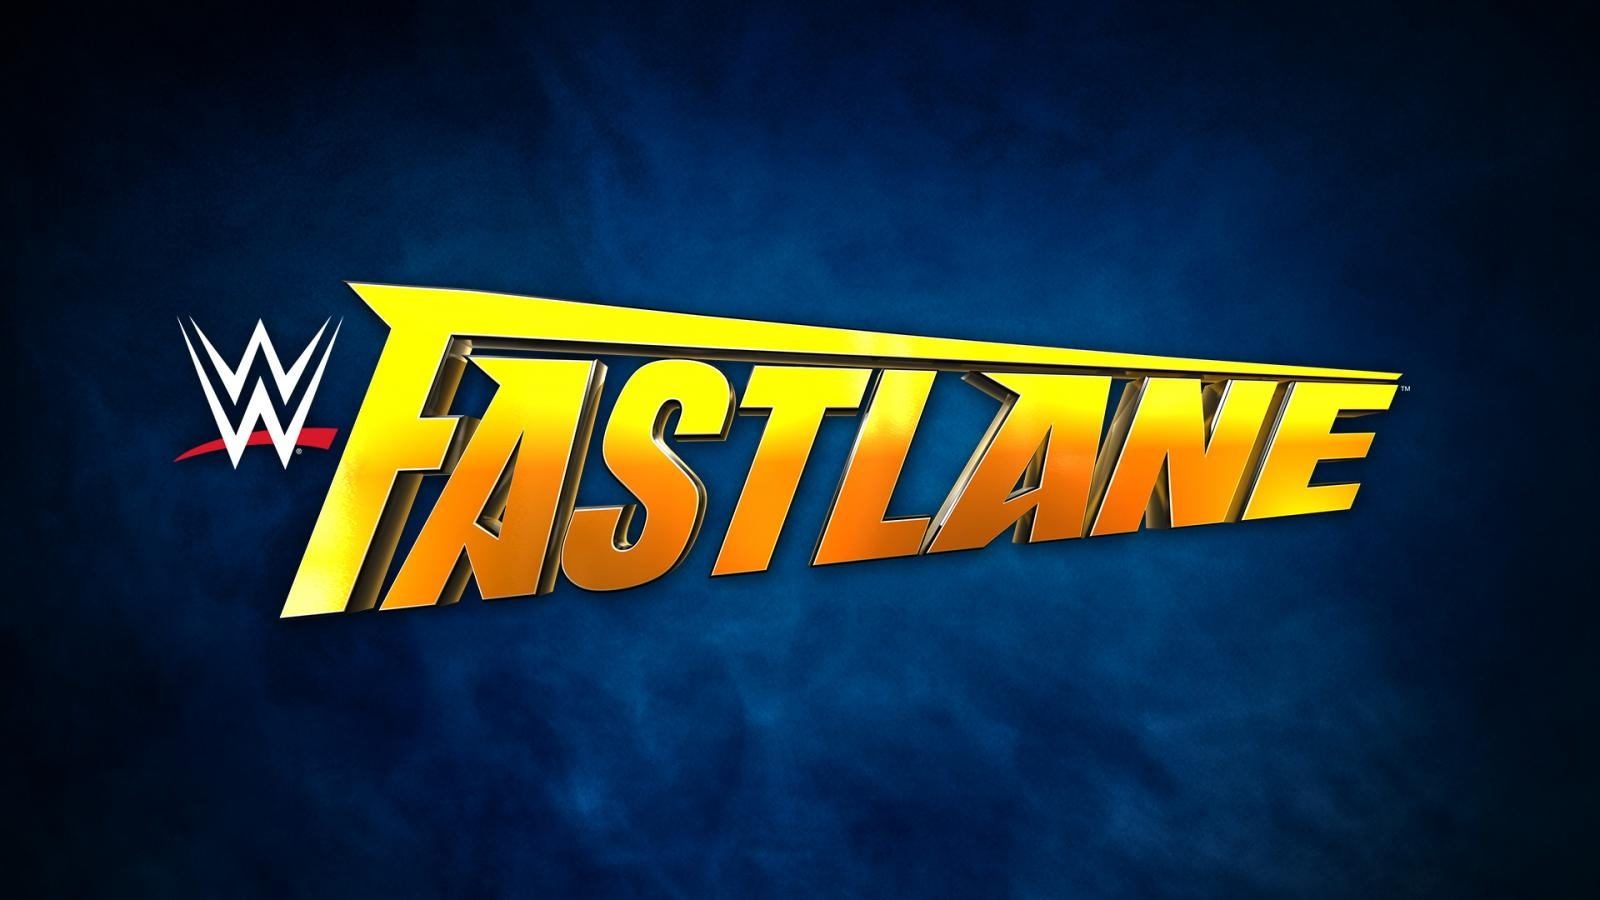 New Top Matches Revealed For WWE Fastlane